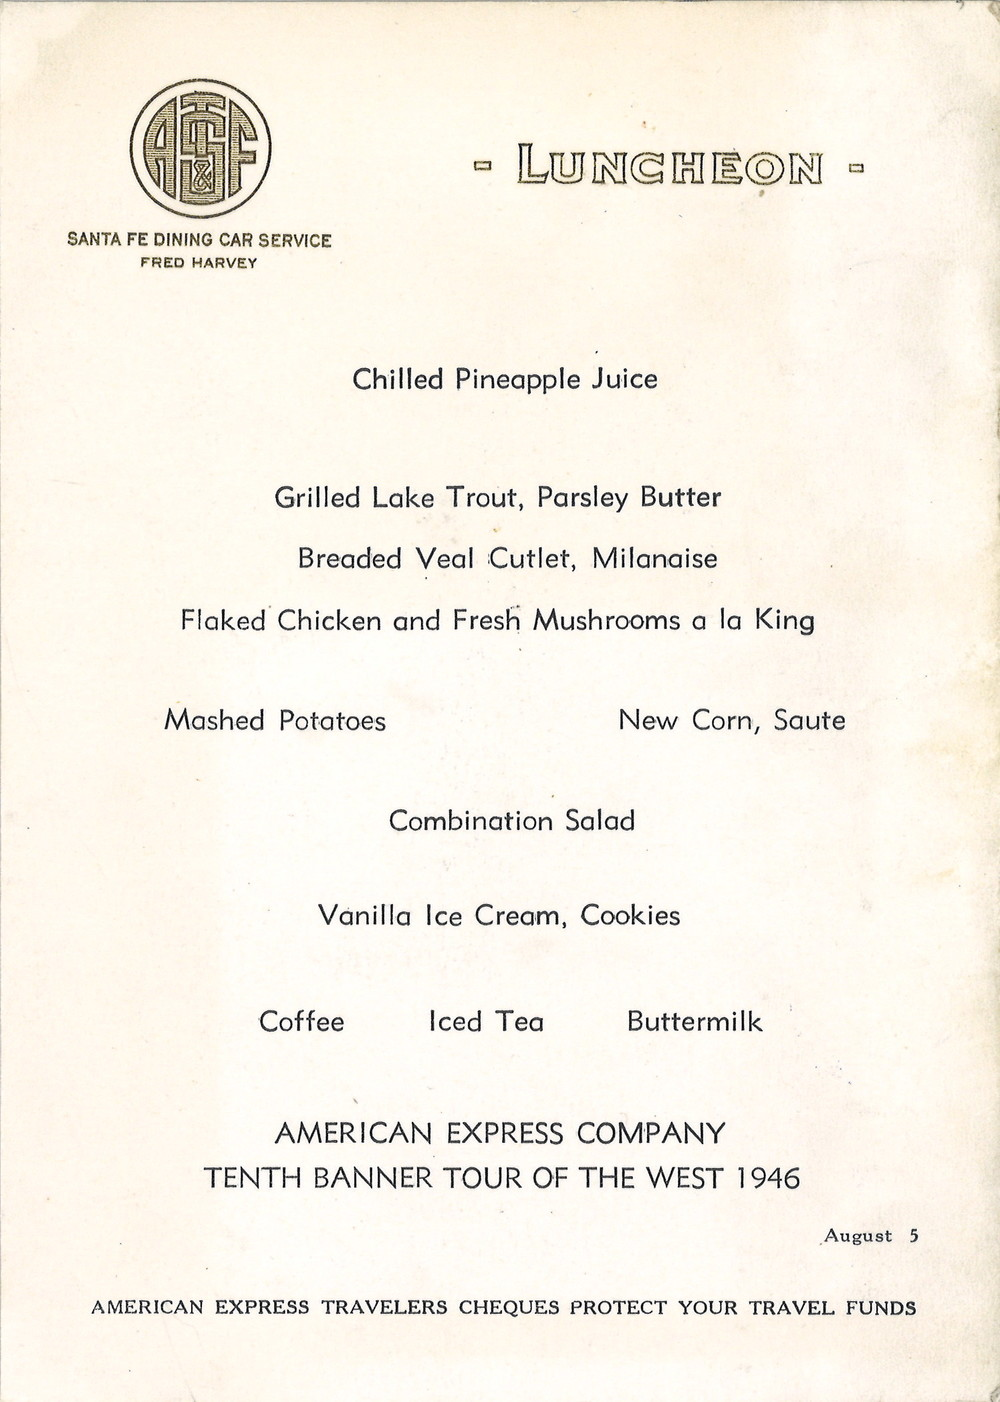 Santa Fe Aug. 5 1946 Lunch Menu.jpg